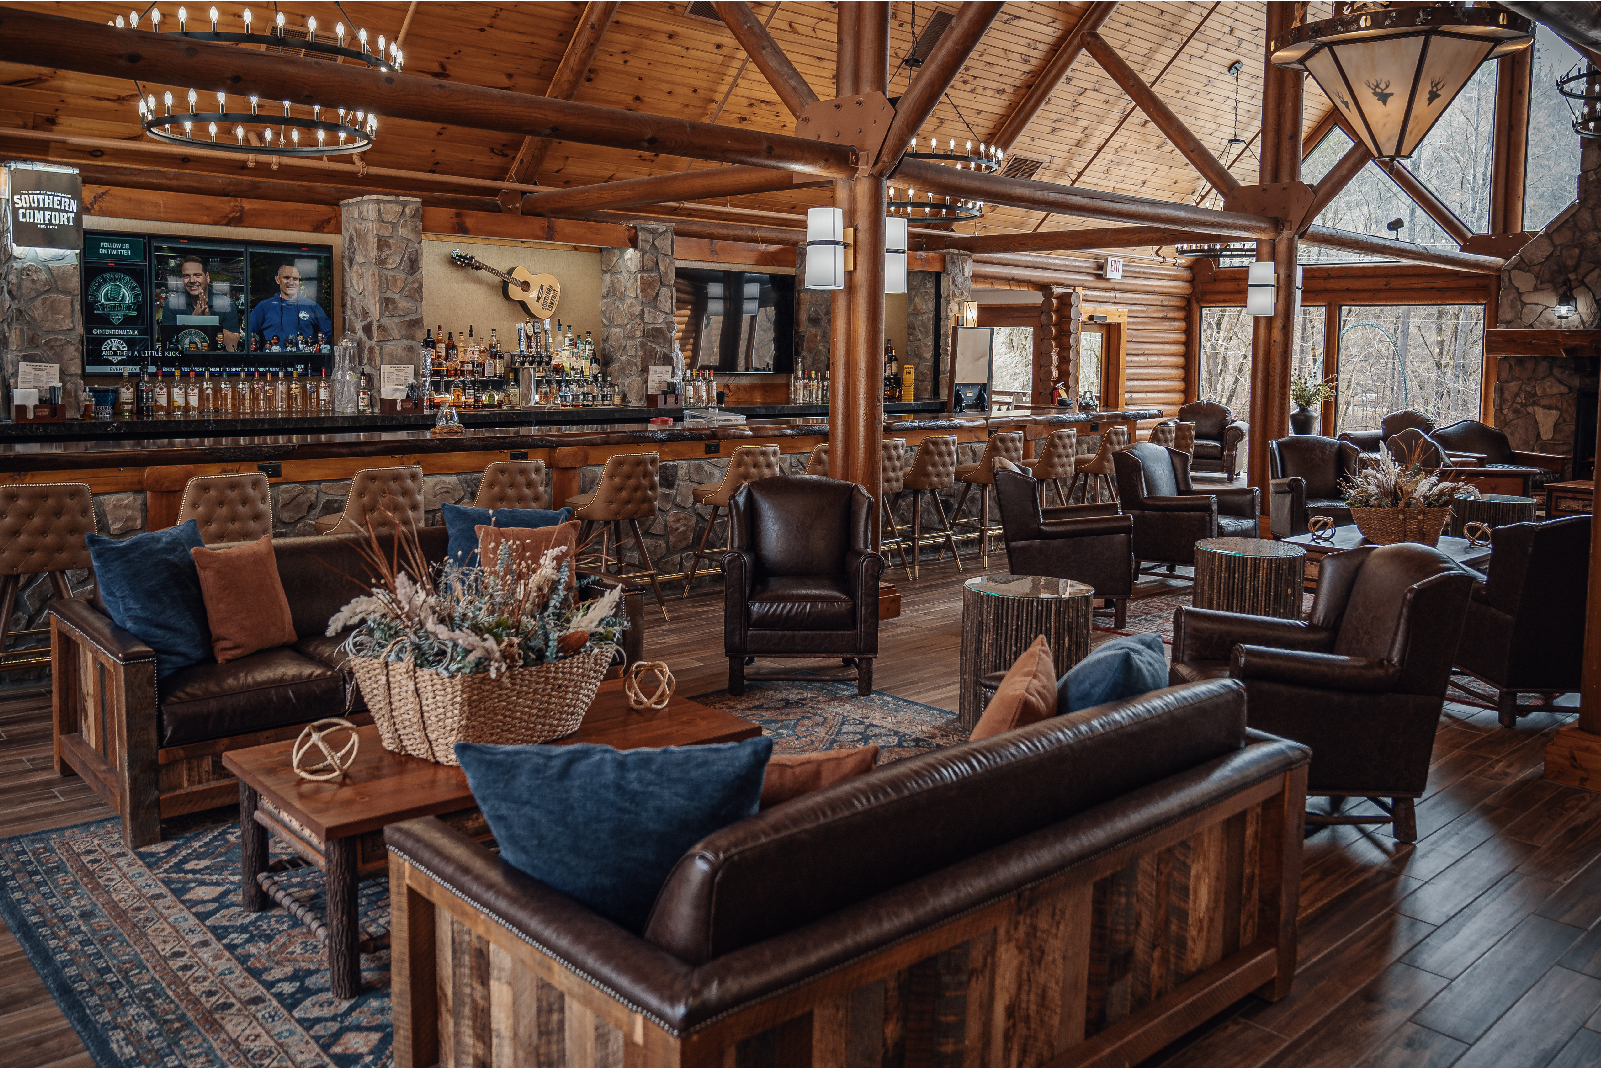 C Laney and Sons Construction are construction contractors in Sevierville TN that provide services ranging from Commercial construction and commercial development, institutional construction and institutional Development, Residential construction and residential development, as well as construction management. We serve clients in Gatlinburg, Sevierville, Sevier County, Knoxville and Knox County, Pigeon Forge, and the surrounding Smoky Mountain area.